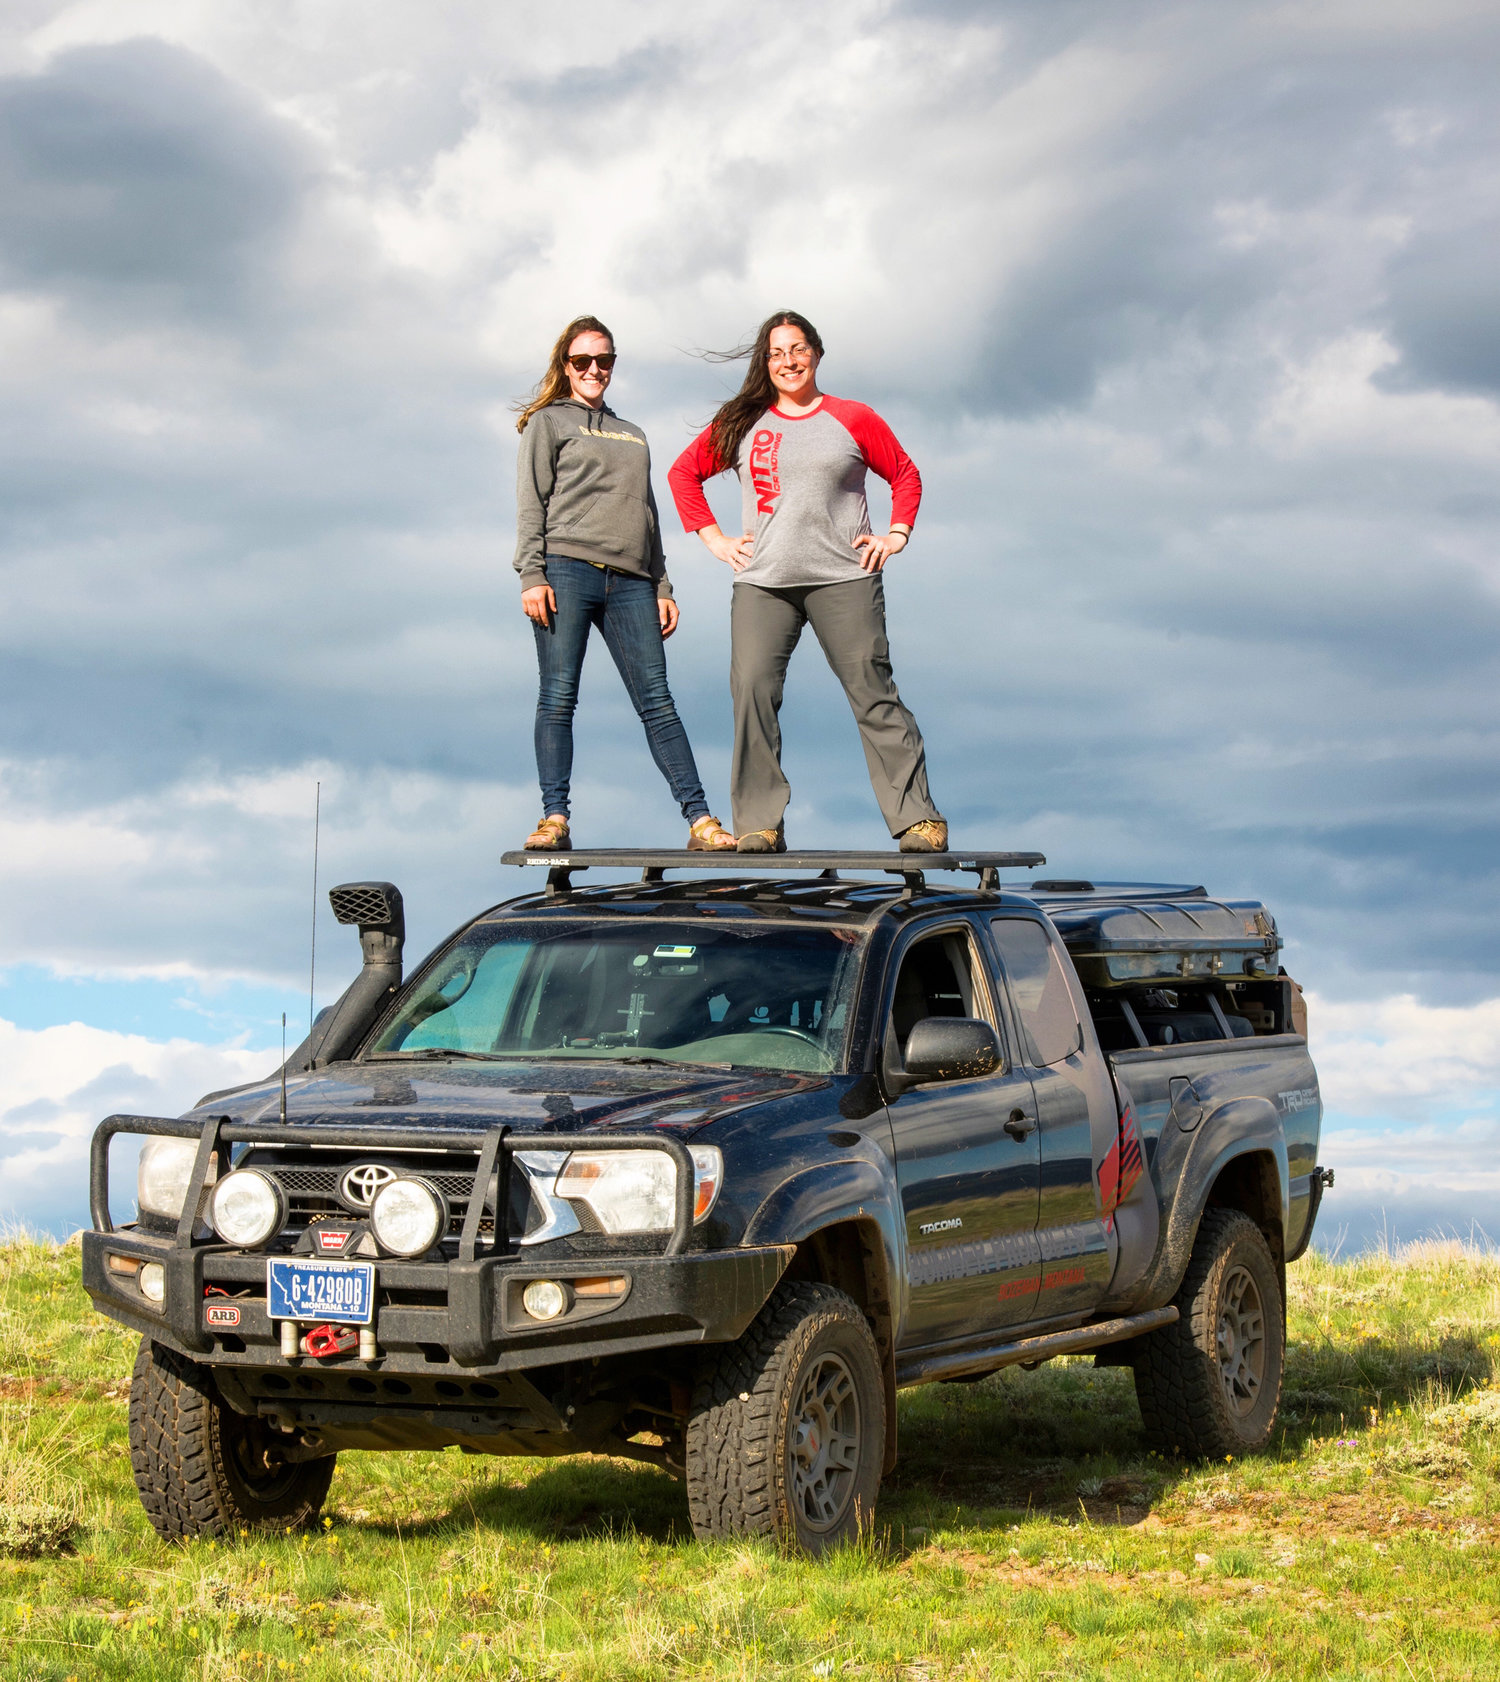 e814a6dffaad Off Road Podcast Episode 189 - Team Free Range Dames — Firearms Radio  Network